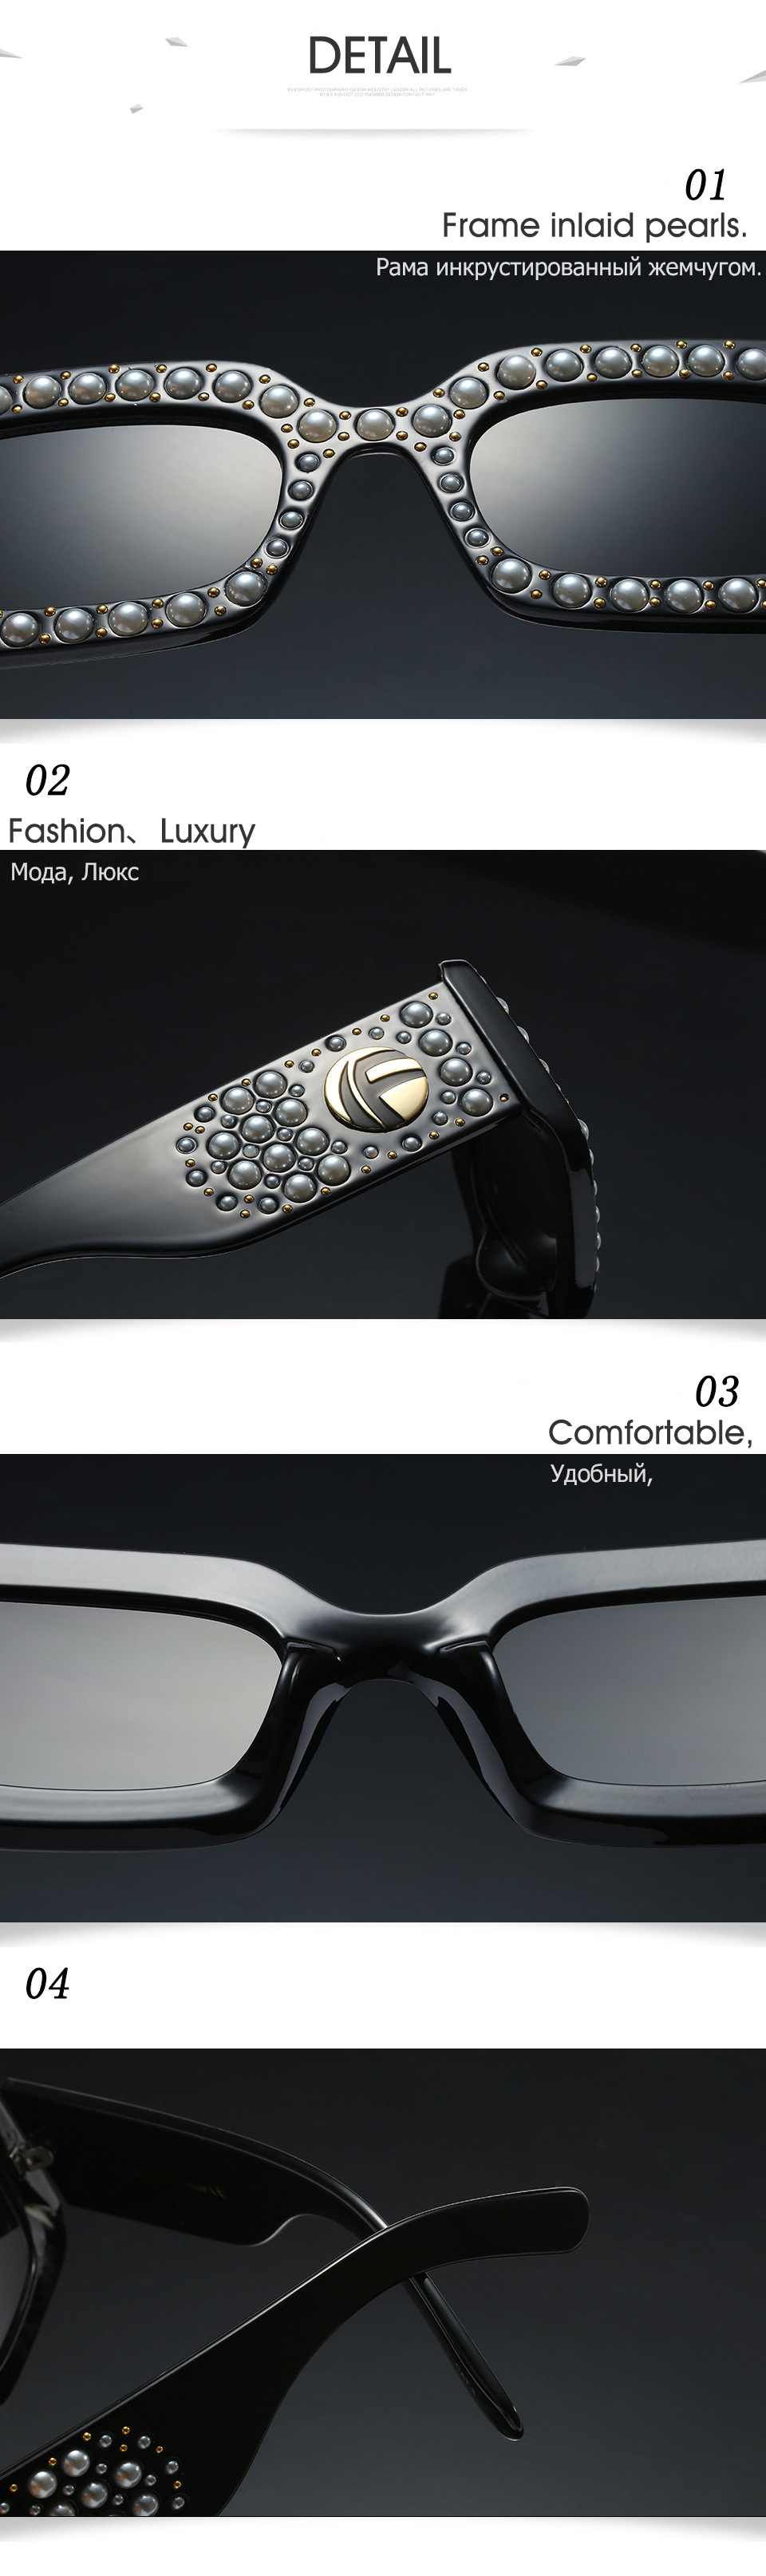 2018 Luxury Italy Brand Pearl Rivet Frame Sunglasses GG Women Sun Glasses Square Ladies Eyewear mujer feminino logo Top quality